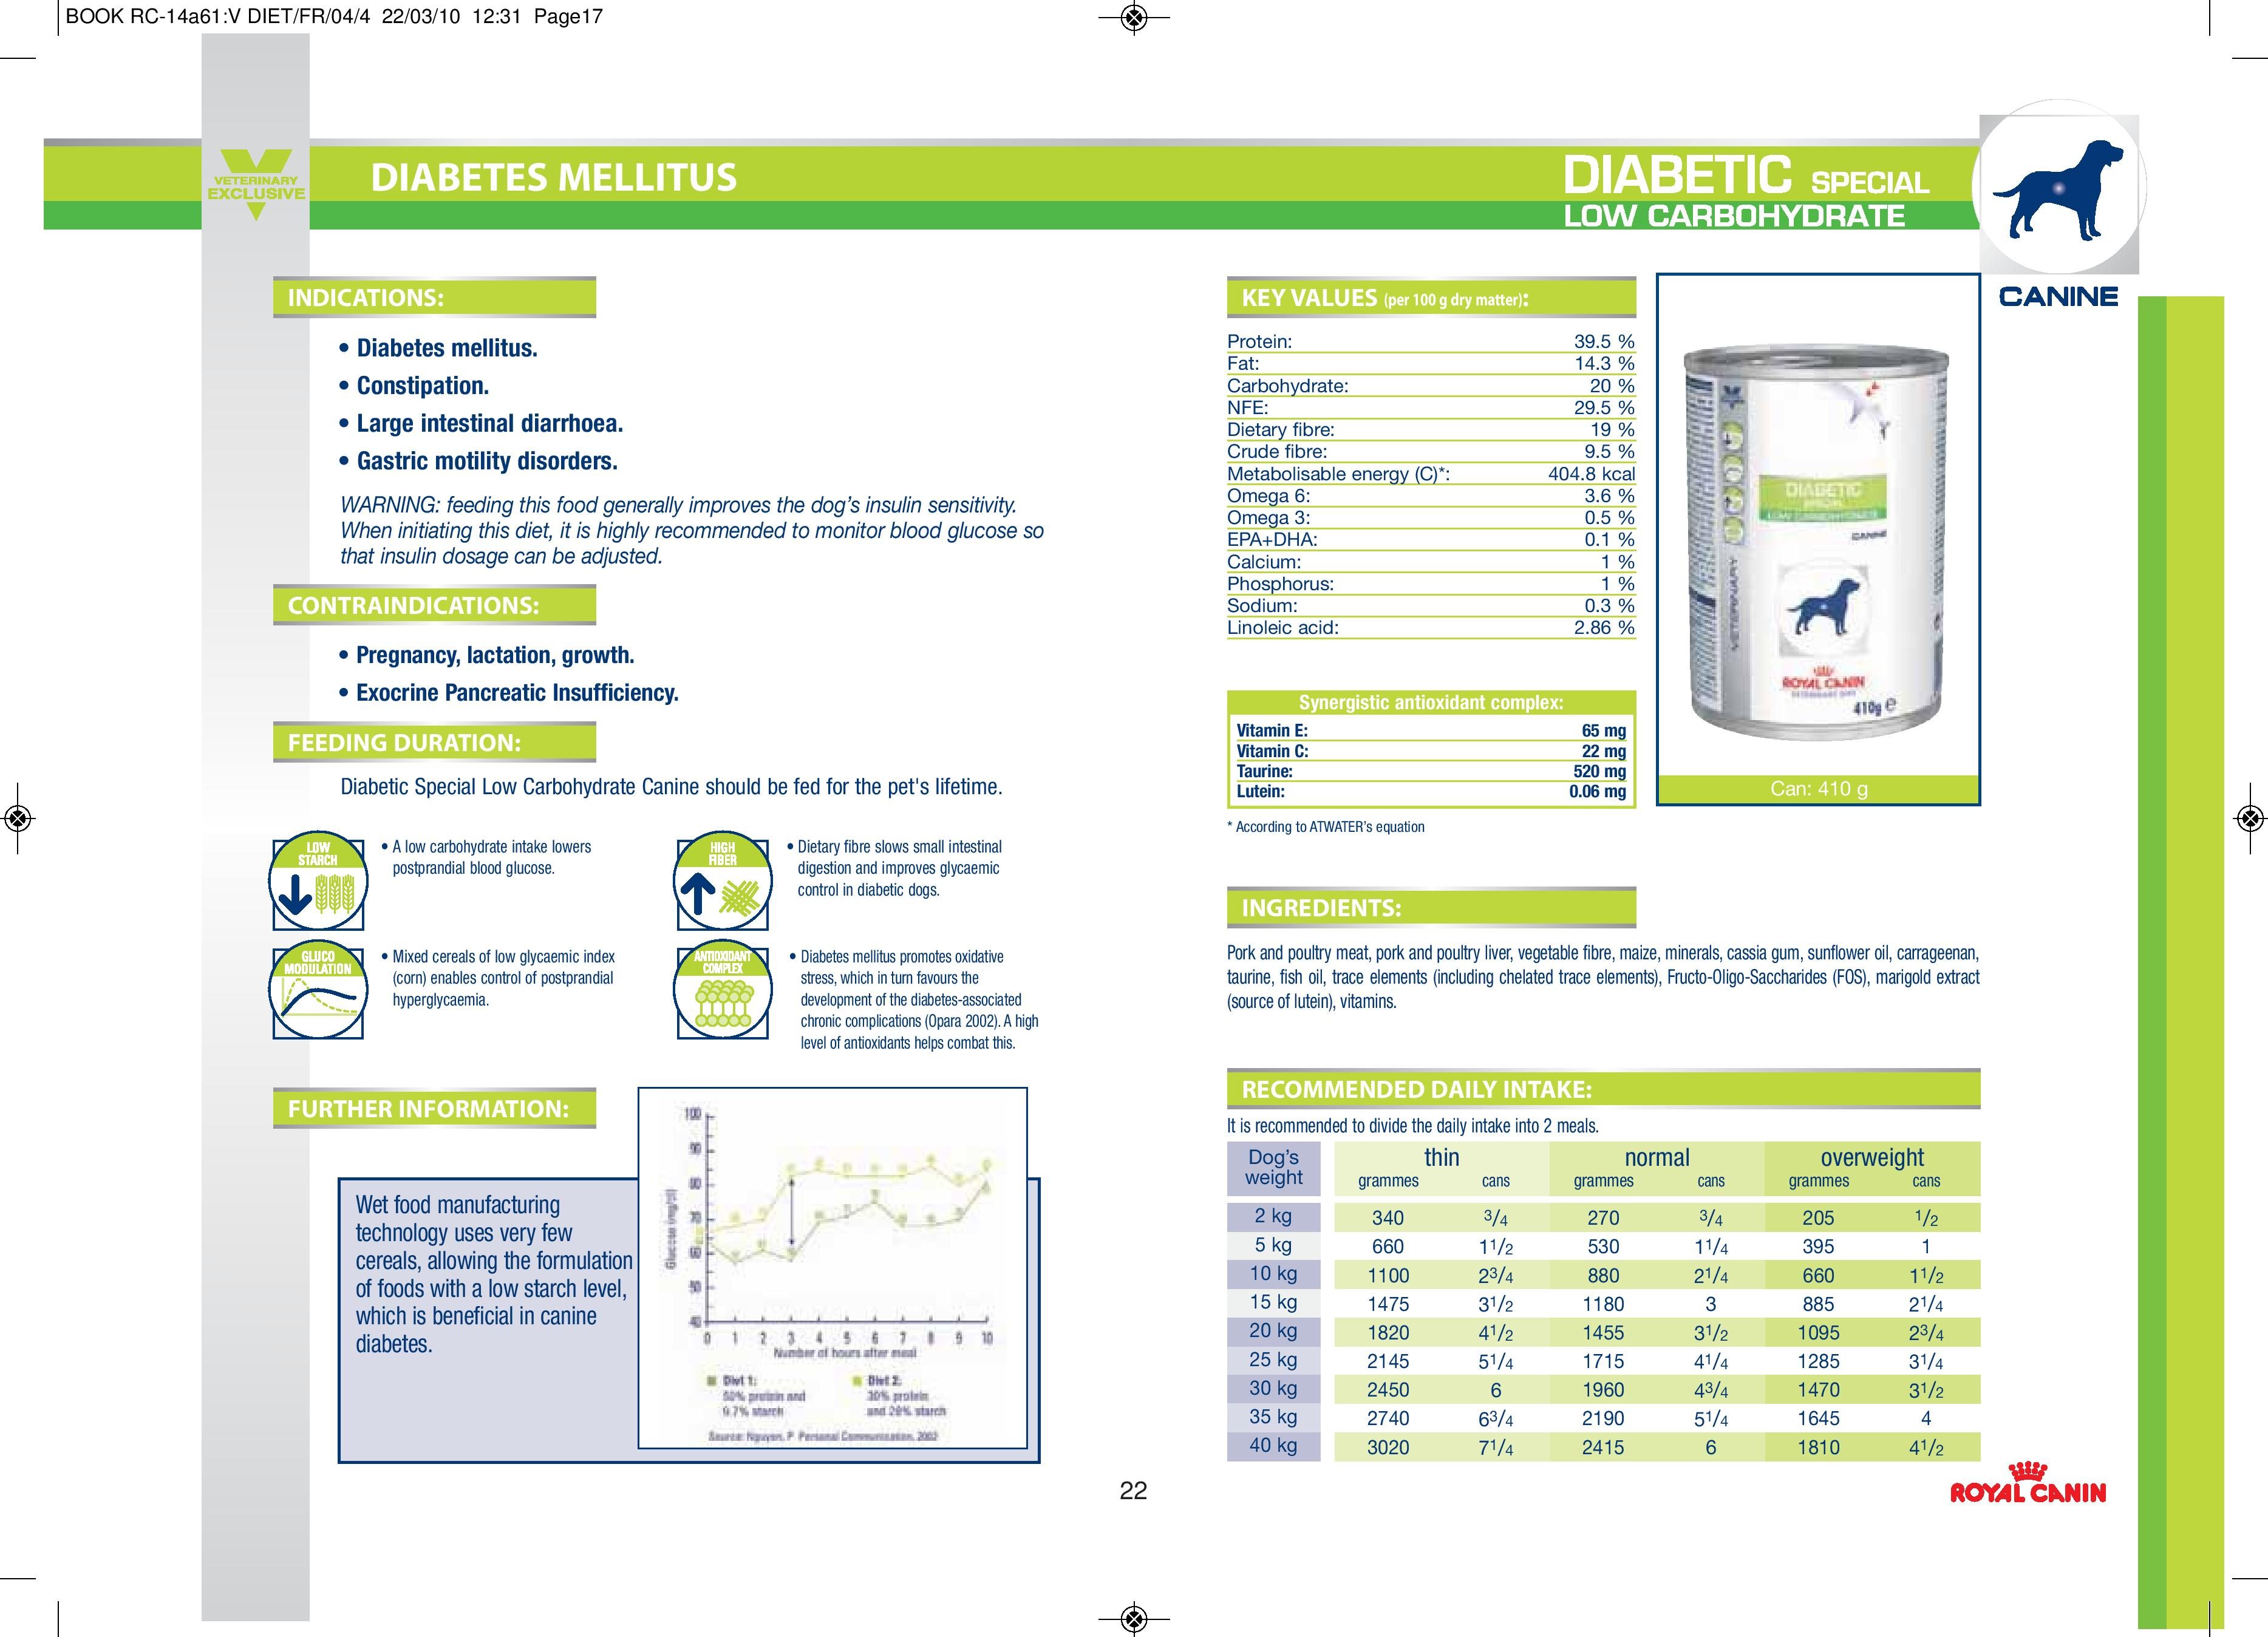 Emirates Animals Export Product Book 2010 BD-page-001 (24)